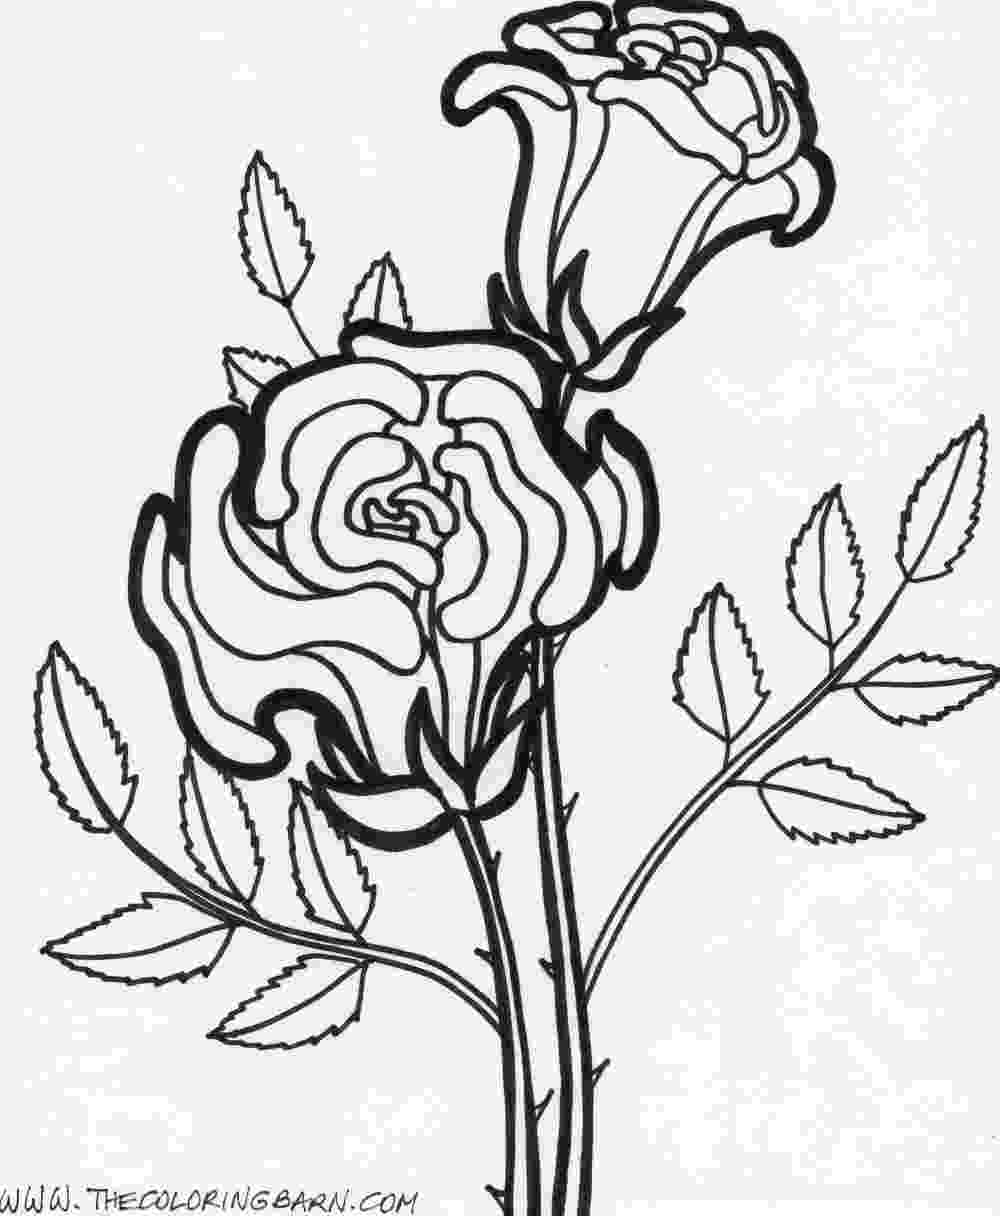 flower color pictures 10 cool coloring pages free premium templates flower color pictures